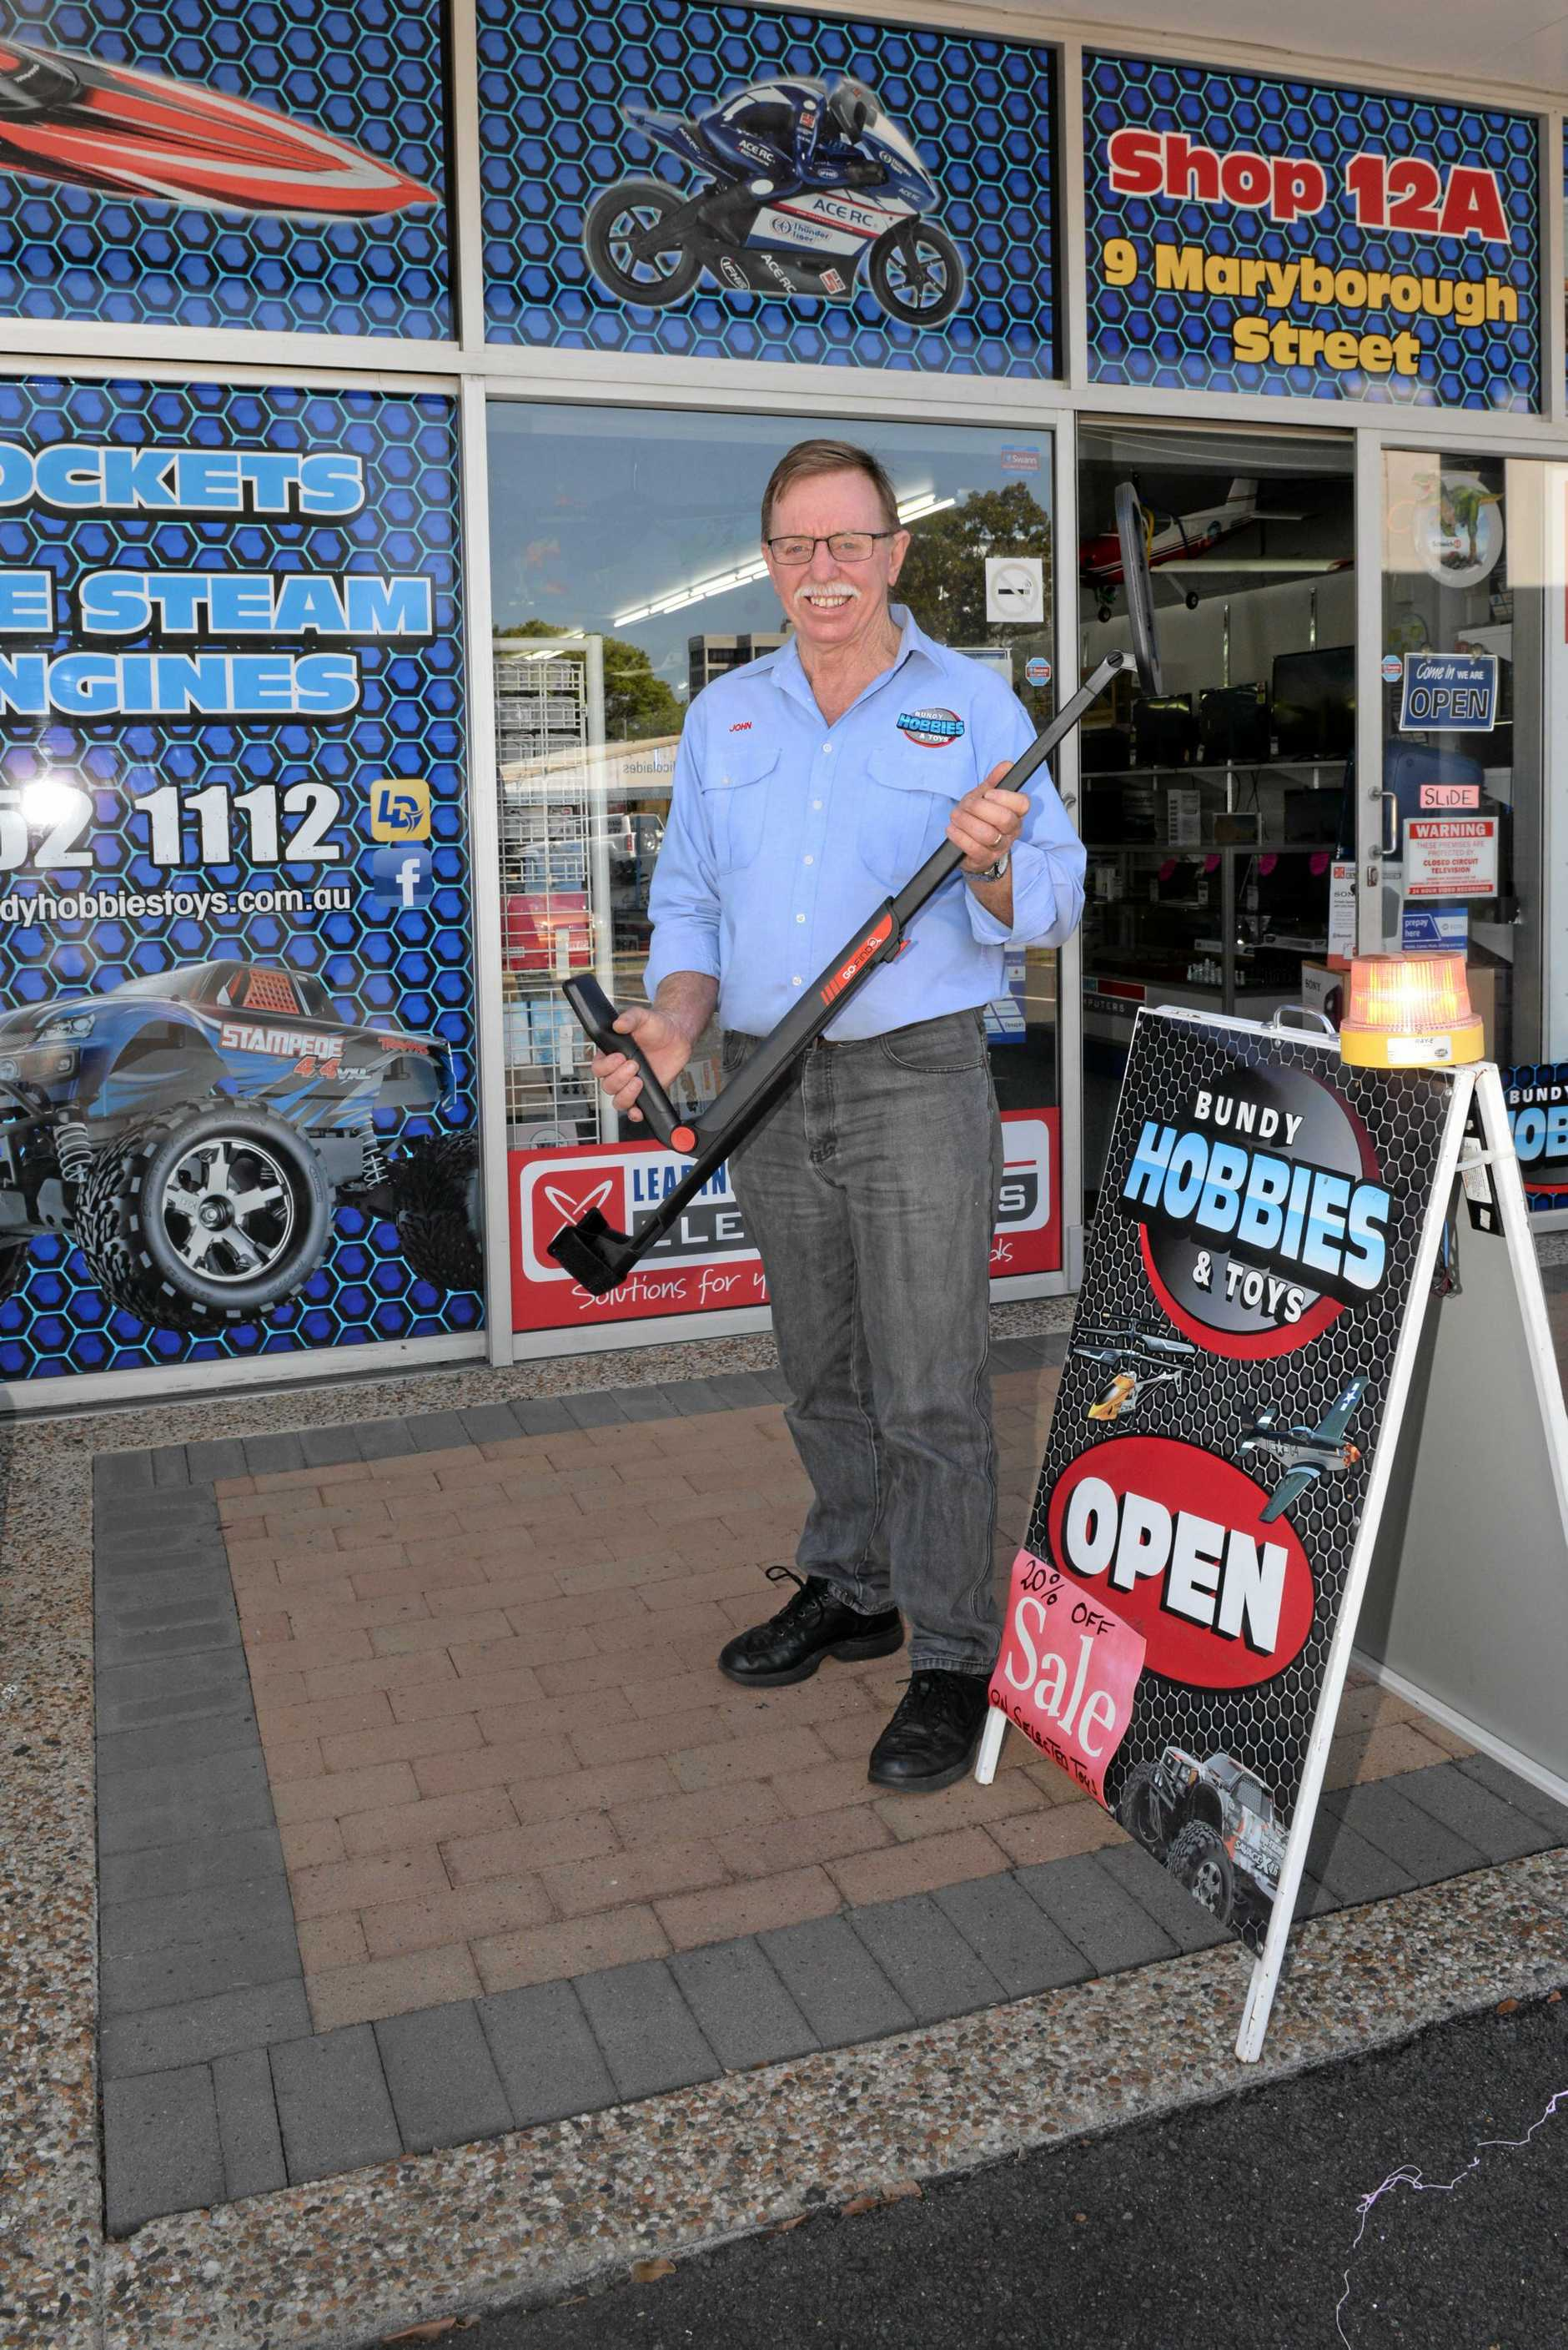 The hobby shop catered for a wide range of interests, from model trains to remote control cars, planes, boats, helicopters, plastic kits, slot cars, rockets, kites and hobby accessories.